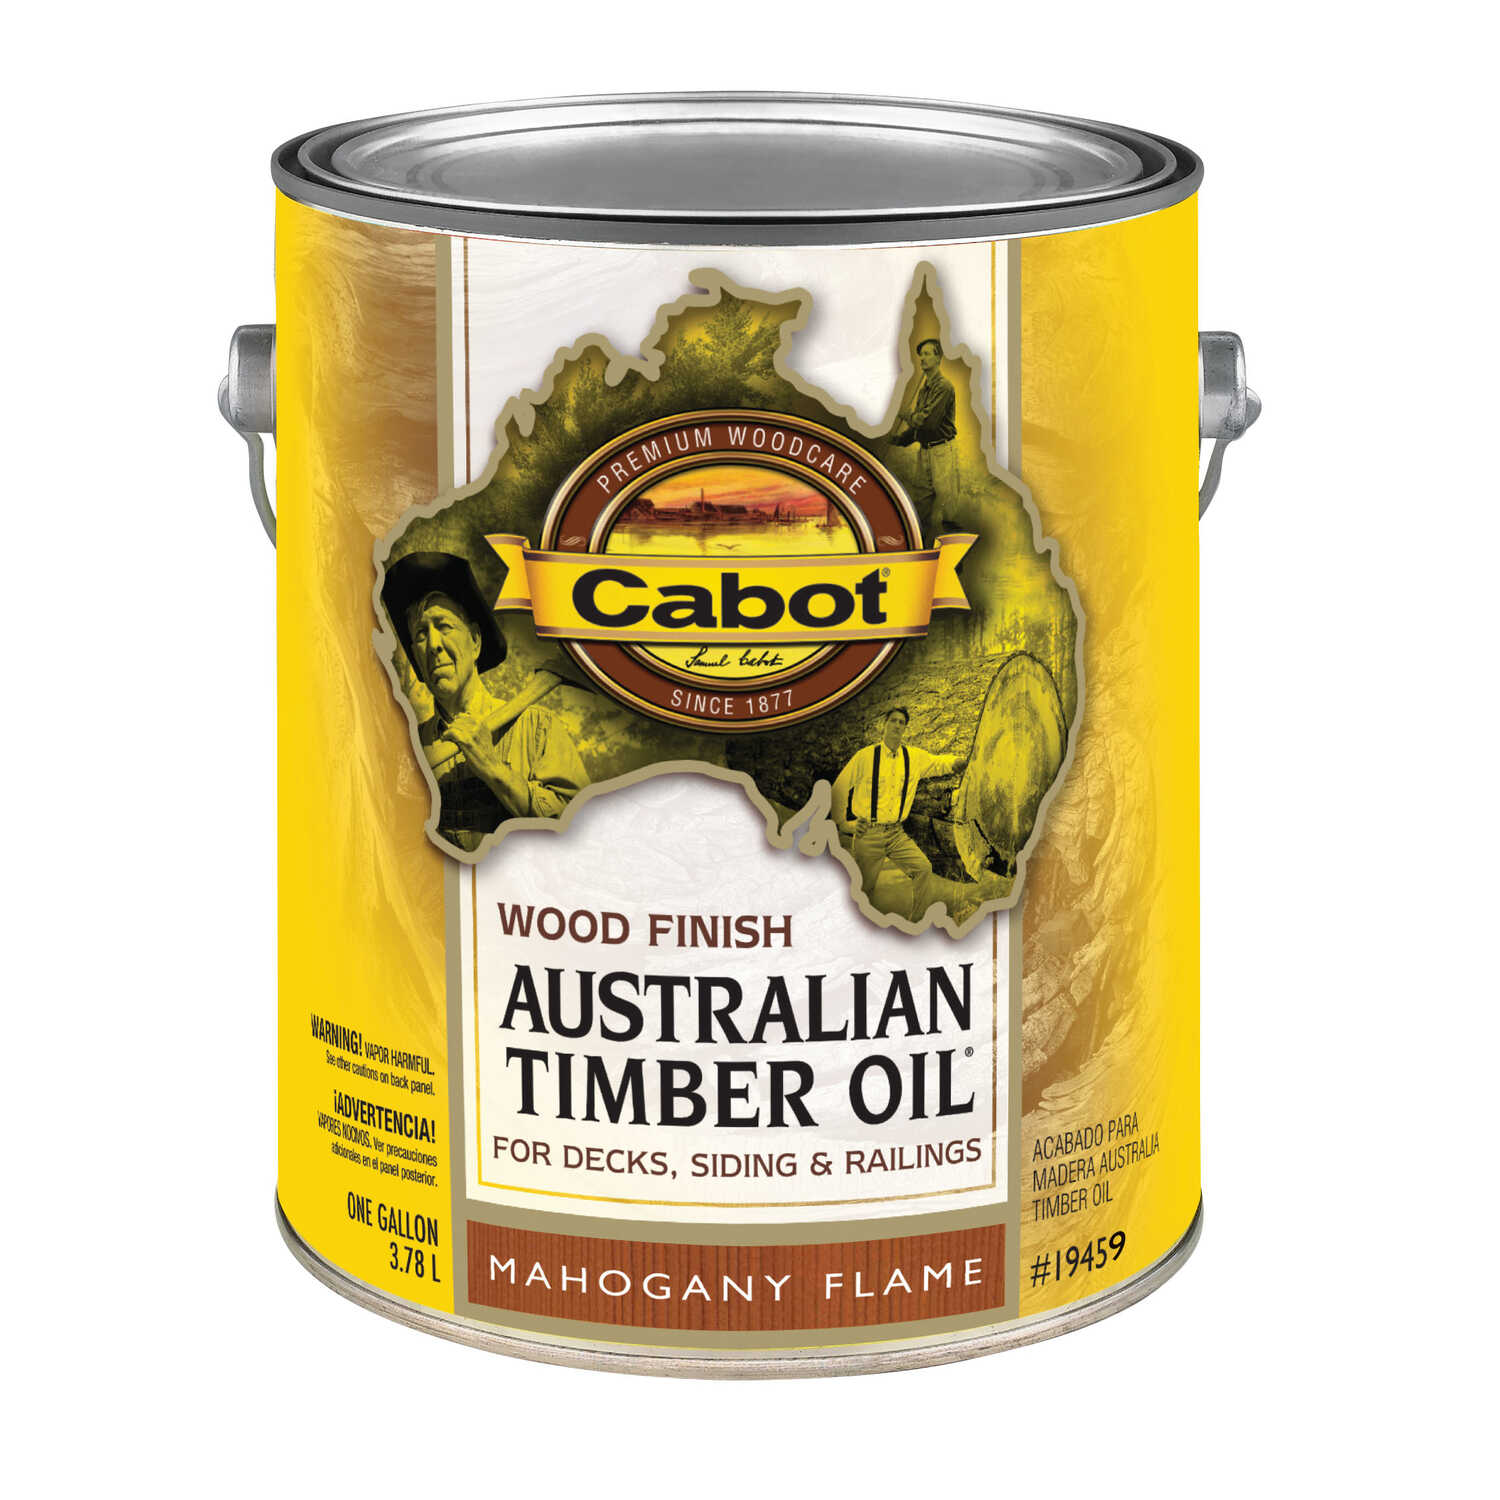 Cabot  Transparent  19459 Mahogany Flame  Oil-Based  Natural Oil/Waterborne Hybrid  Australian Timbe